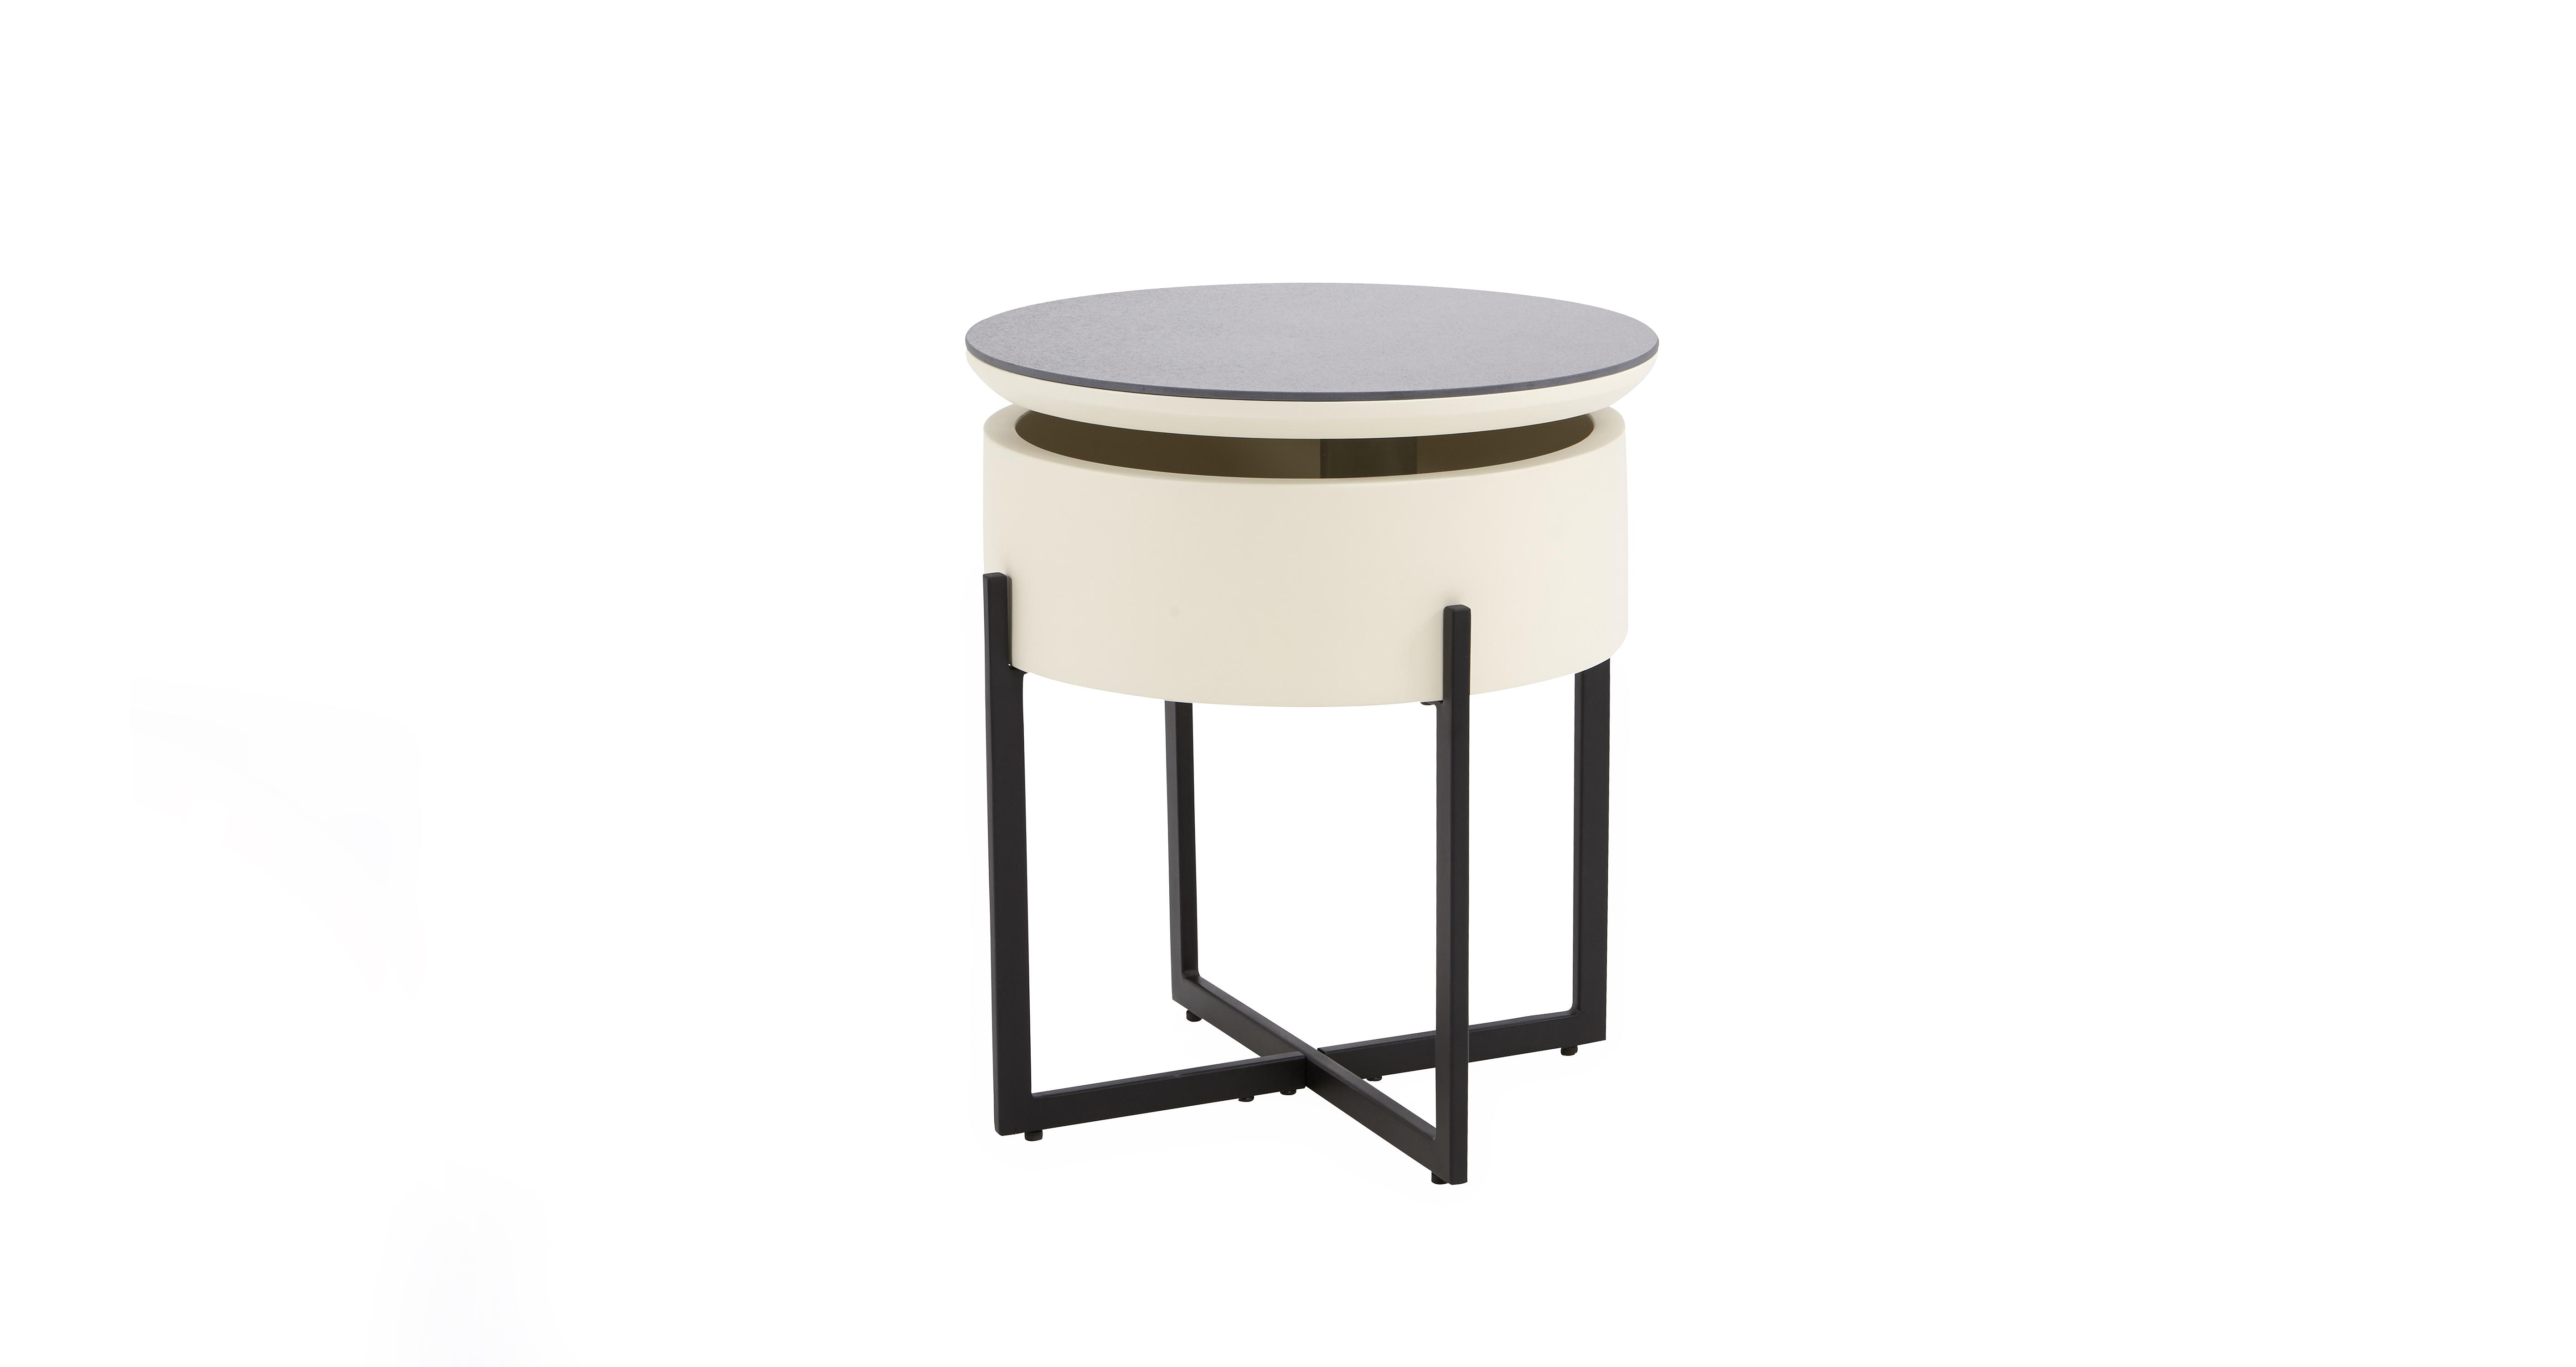 Cirque lamp table dfs for Lamp table dfs